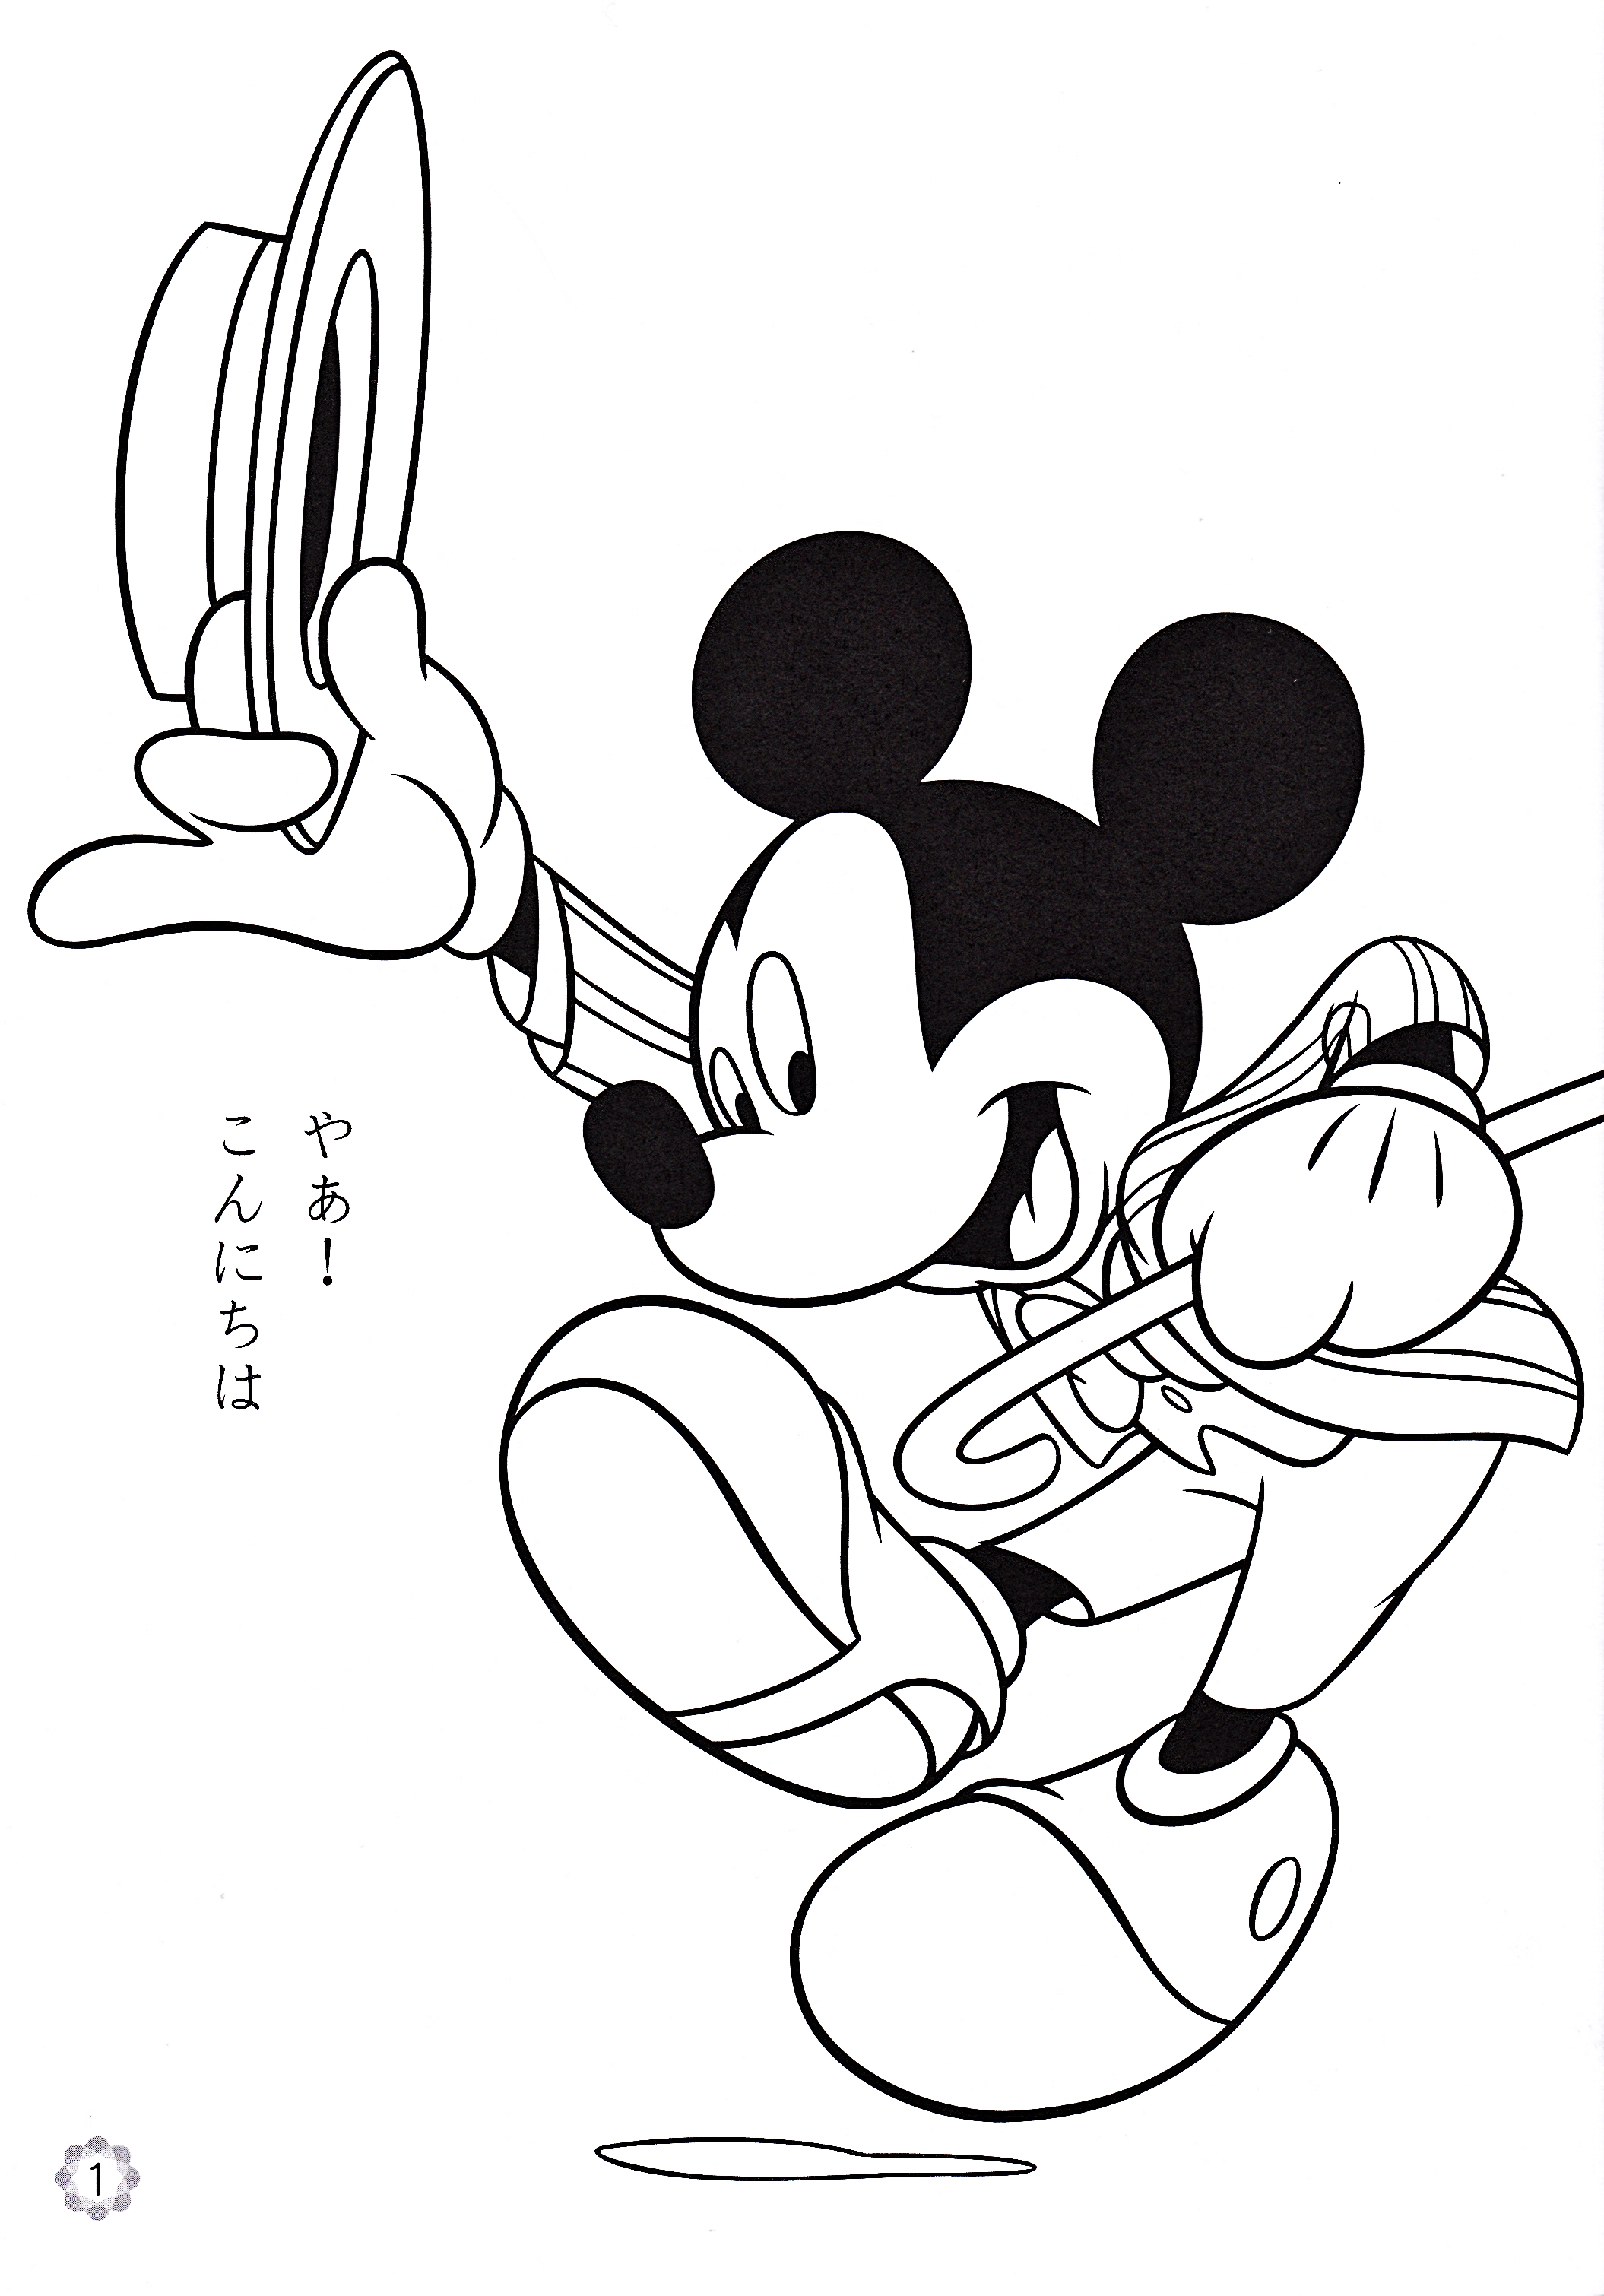 Walt Disney Coloring Pages - Mickey mouse